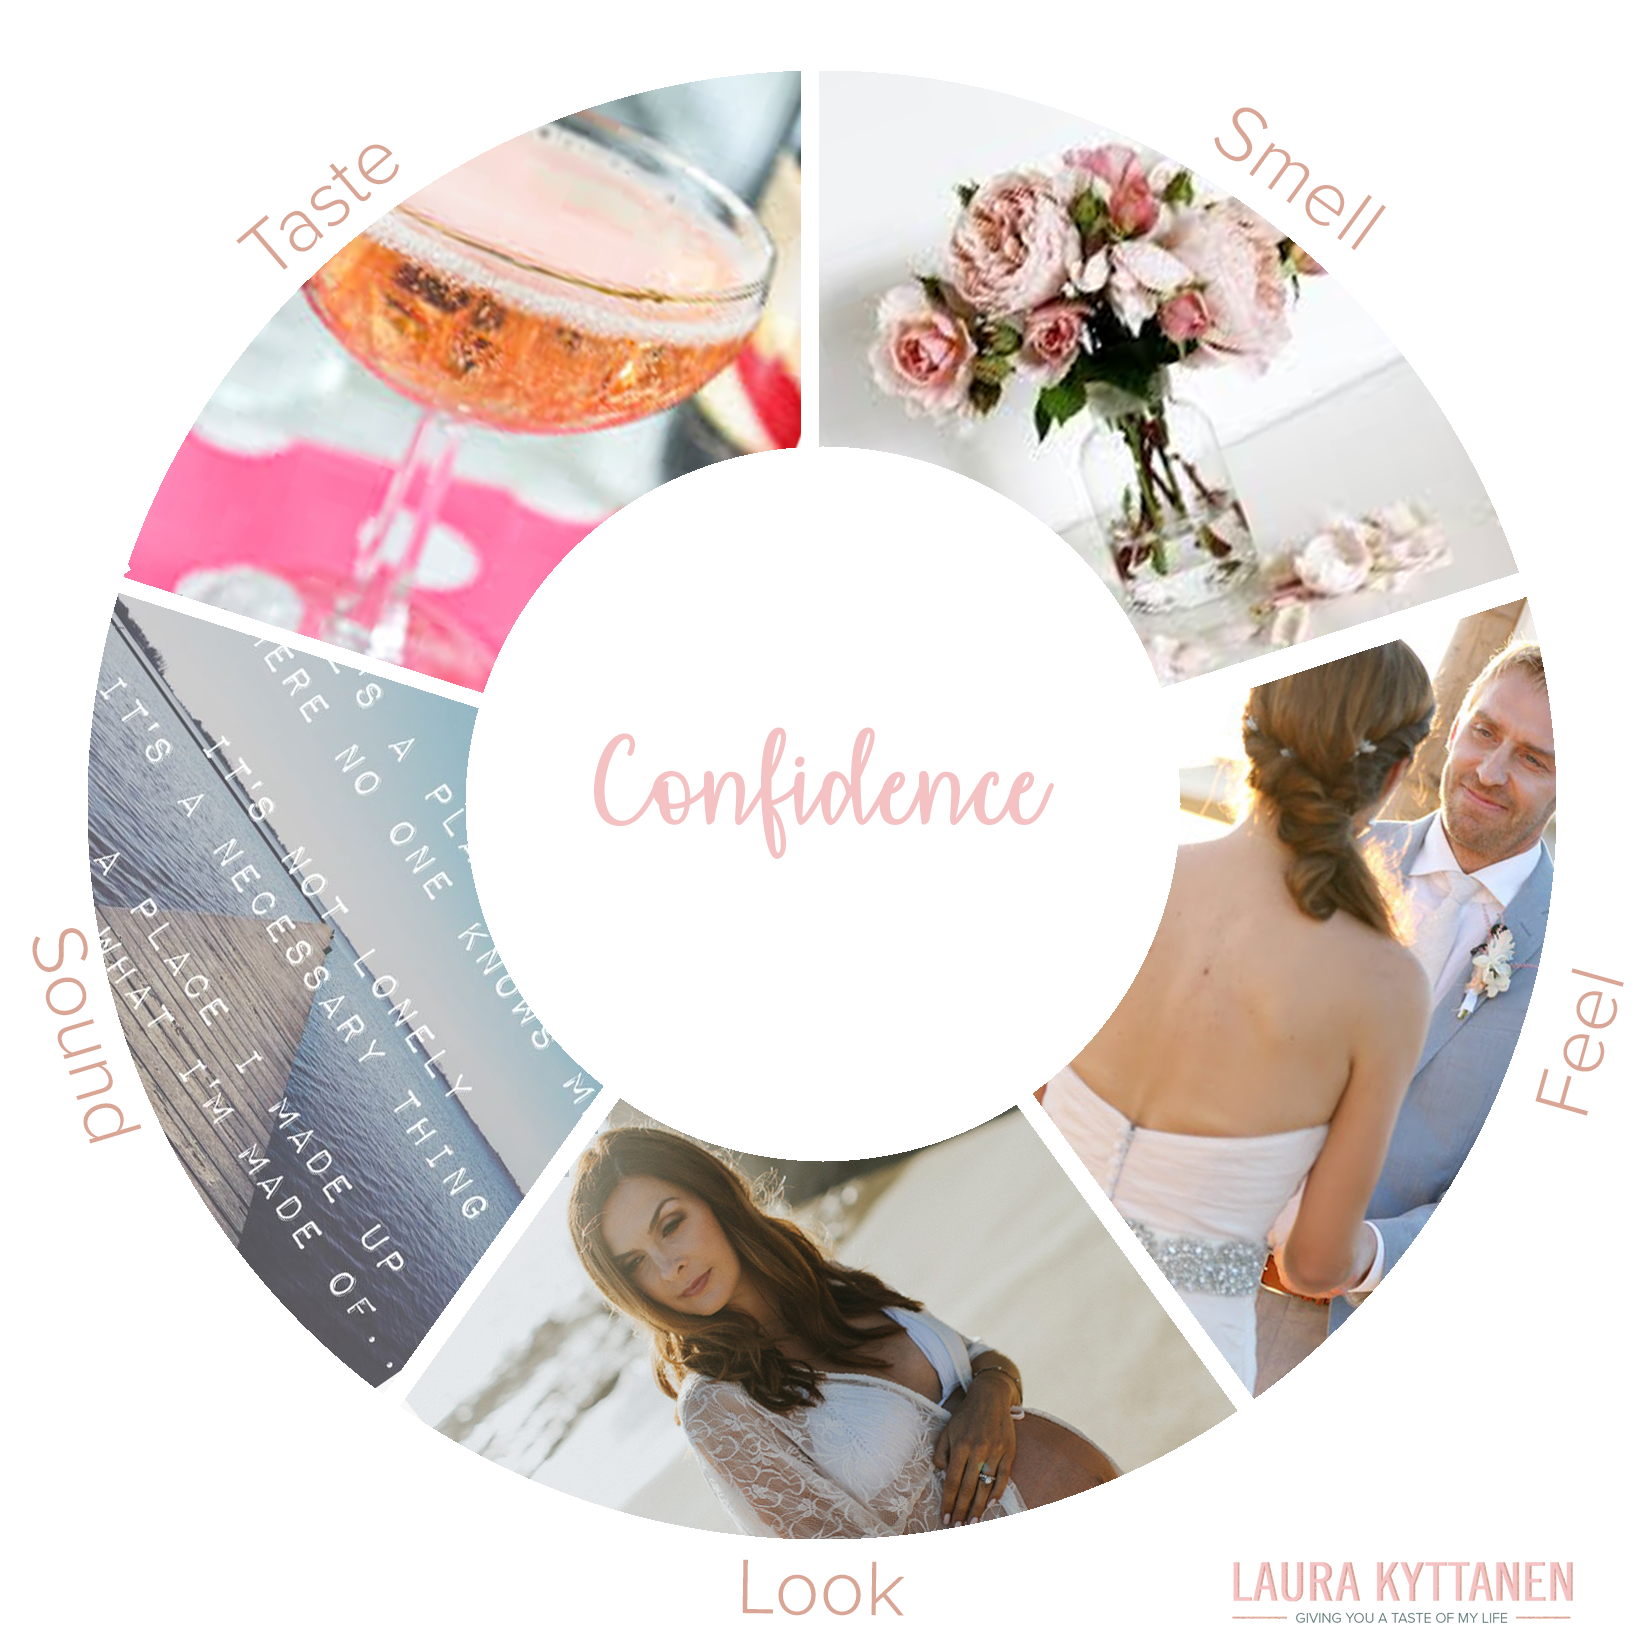 My sensory branding mood wheel for confidence. Curious to learn more about these wheels?  Contact me!